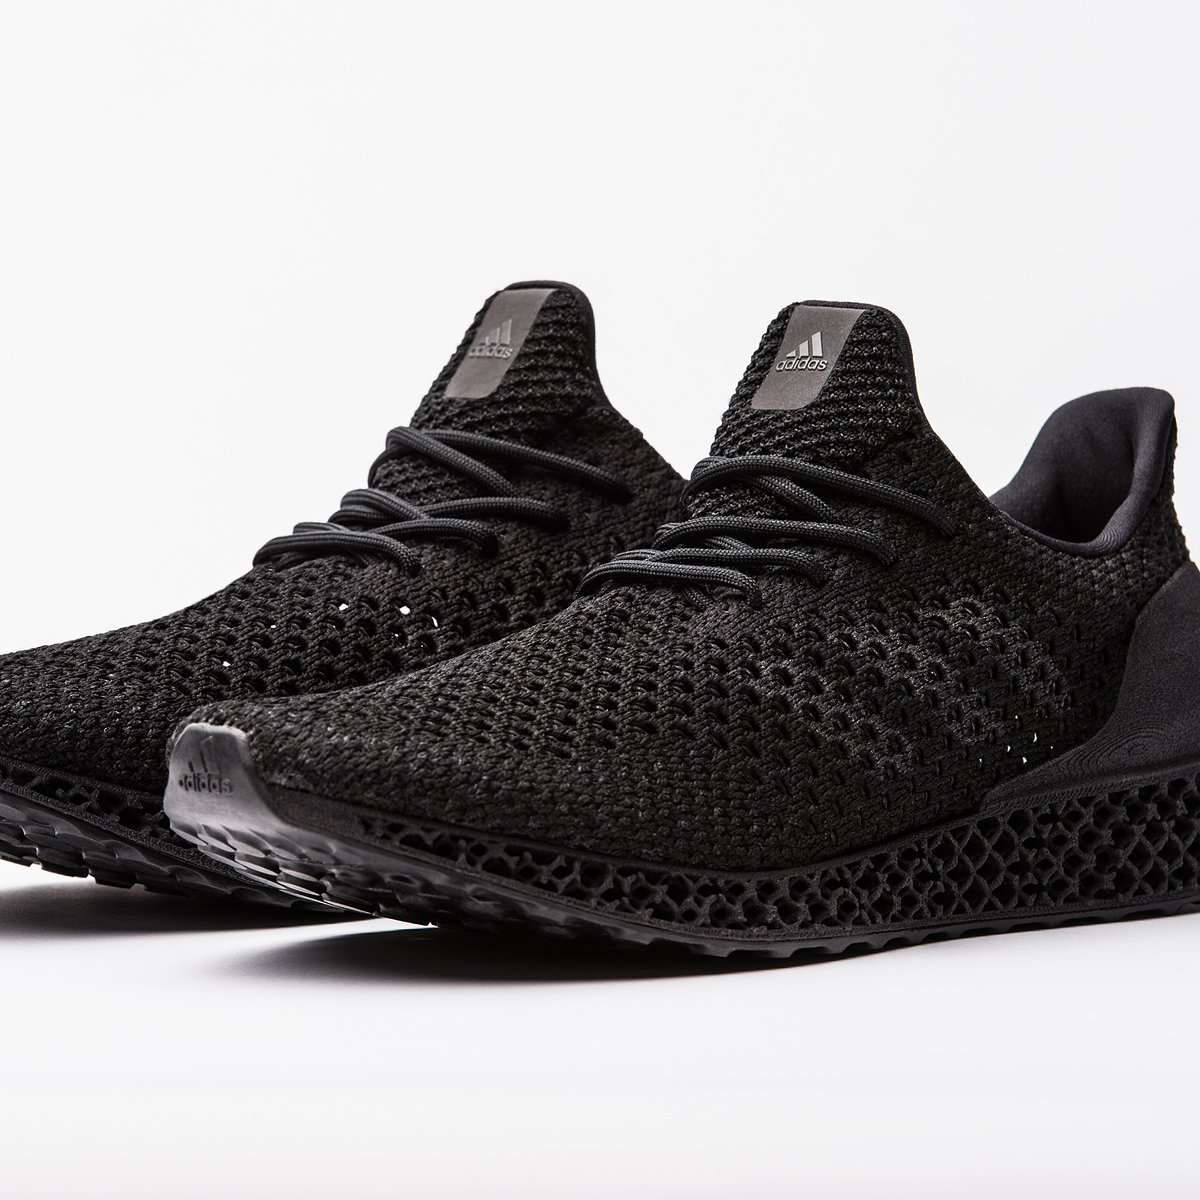 Adidas 3D Runner - First Commercial Drop of 3D Printed Running Shoes